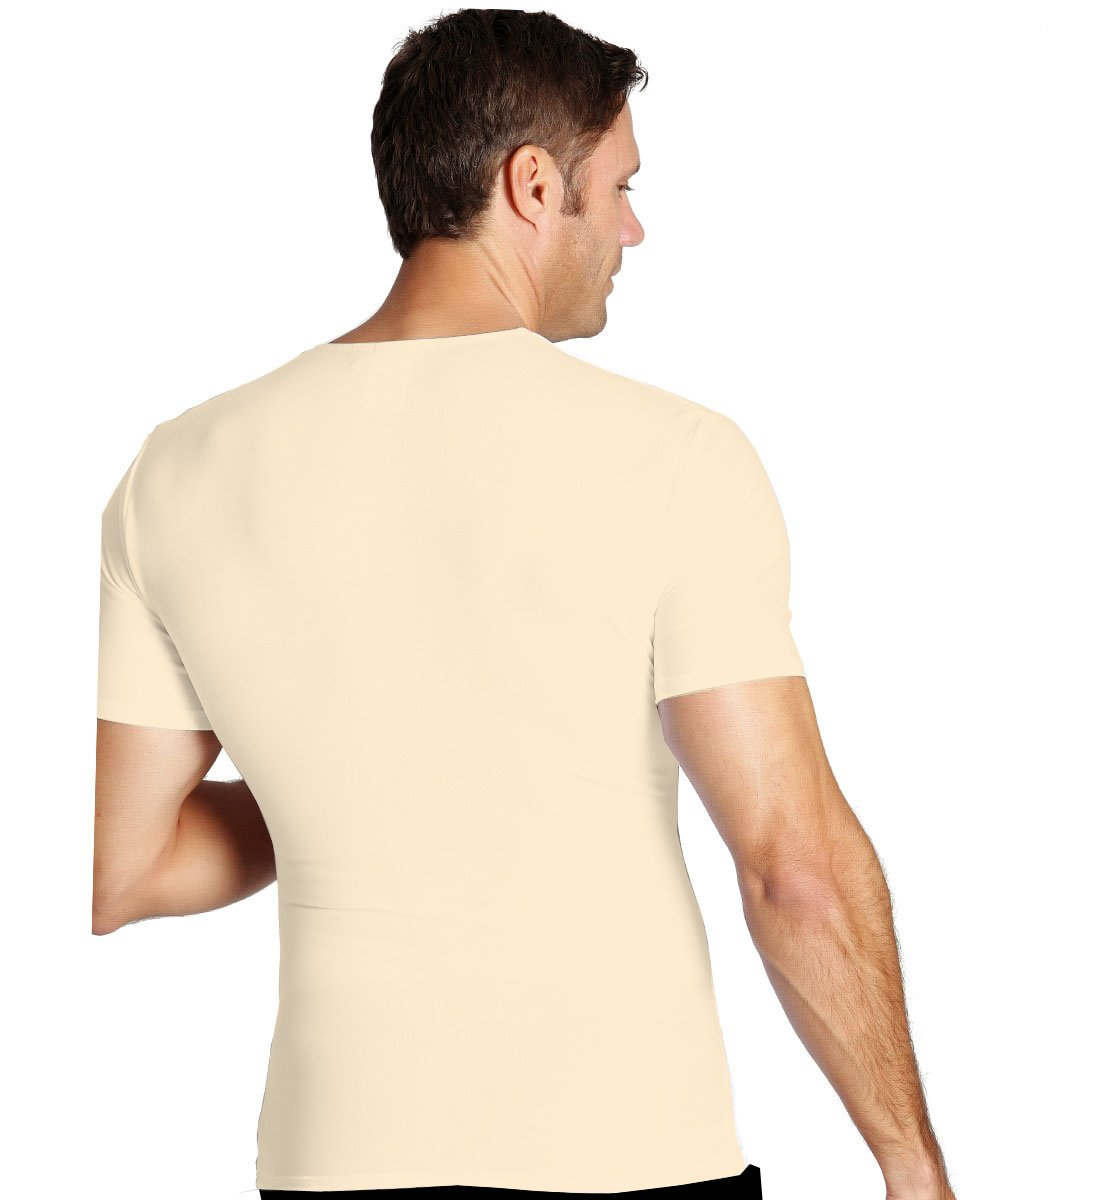 Insta Slim Men's Compression Crew-Neck T-Shirt (X-Large, Nude), The Magic Is In The Fabric! by Insta Slim (Image #3)